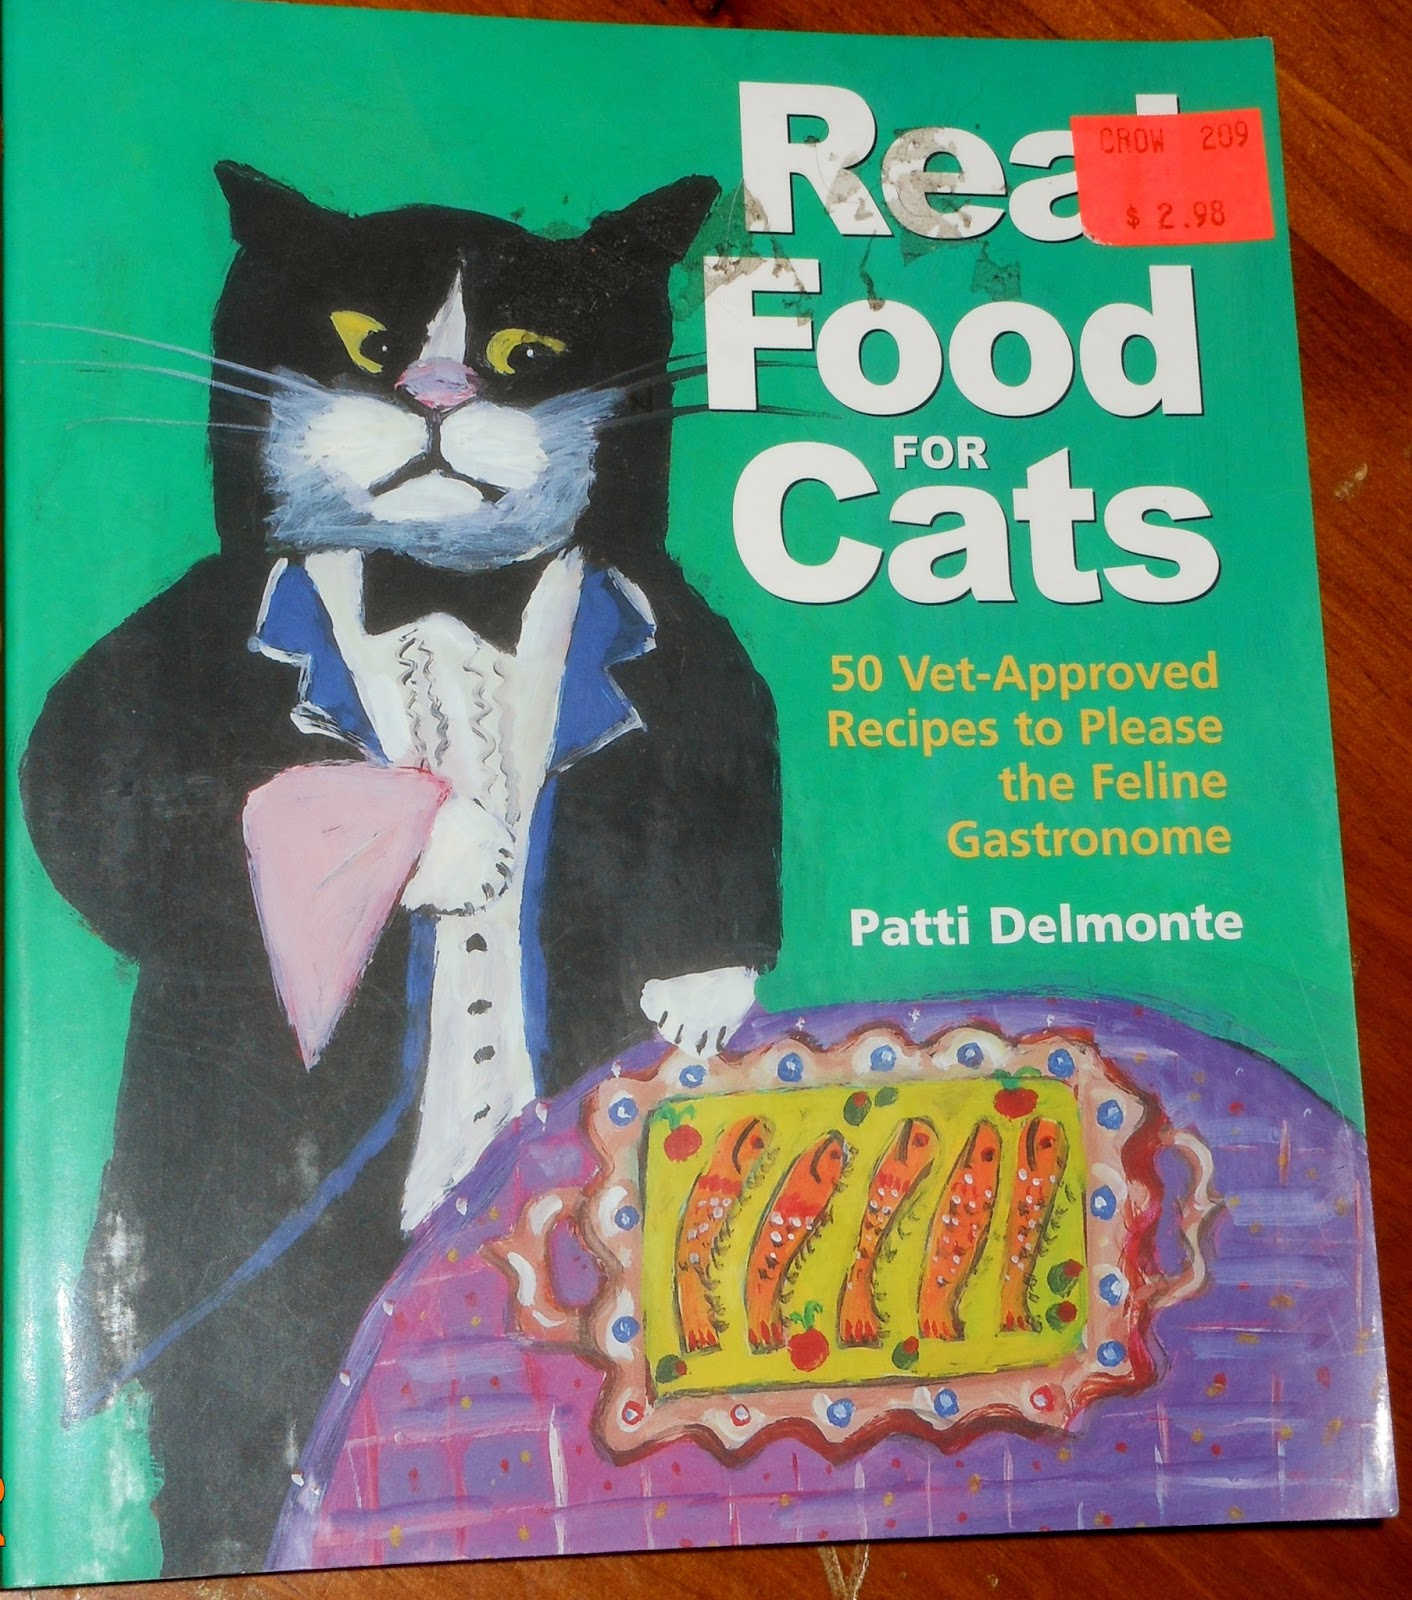 Learn from the past save for the future make your own cat food in the book real food for cats by patti delmonte there are recipes for making your own cat food that are vet approved forumfinder Choice Image